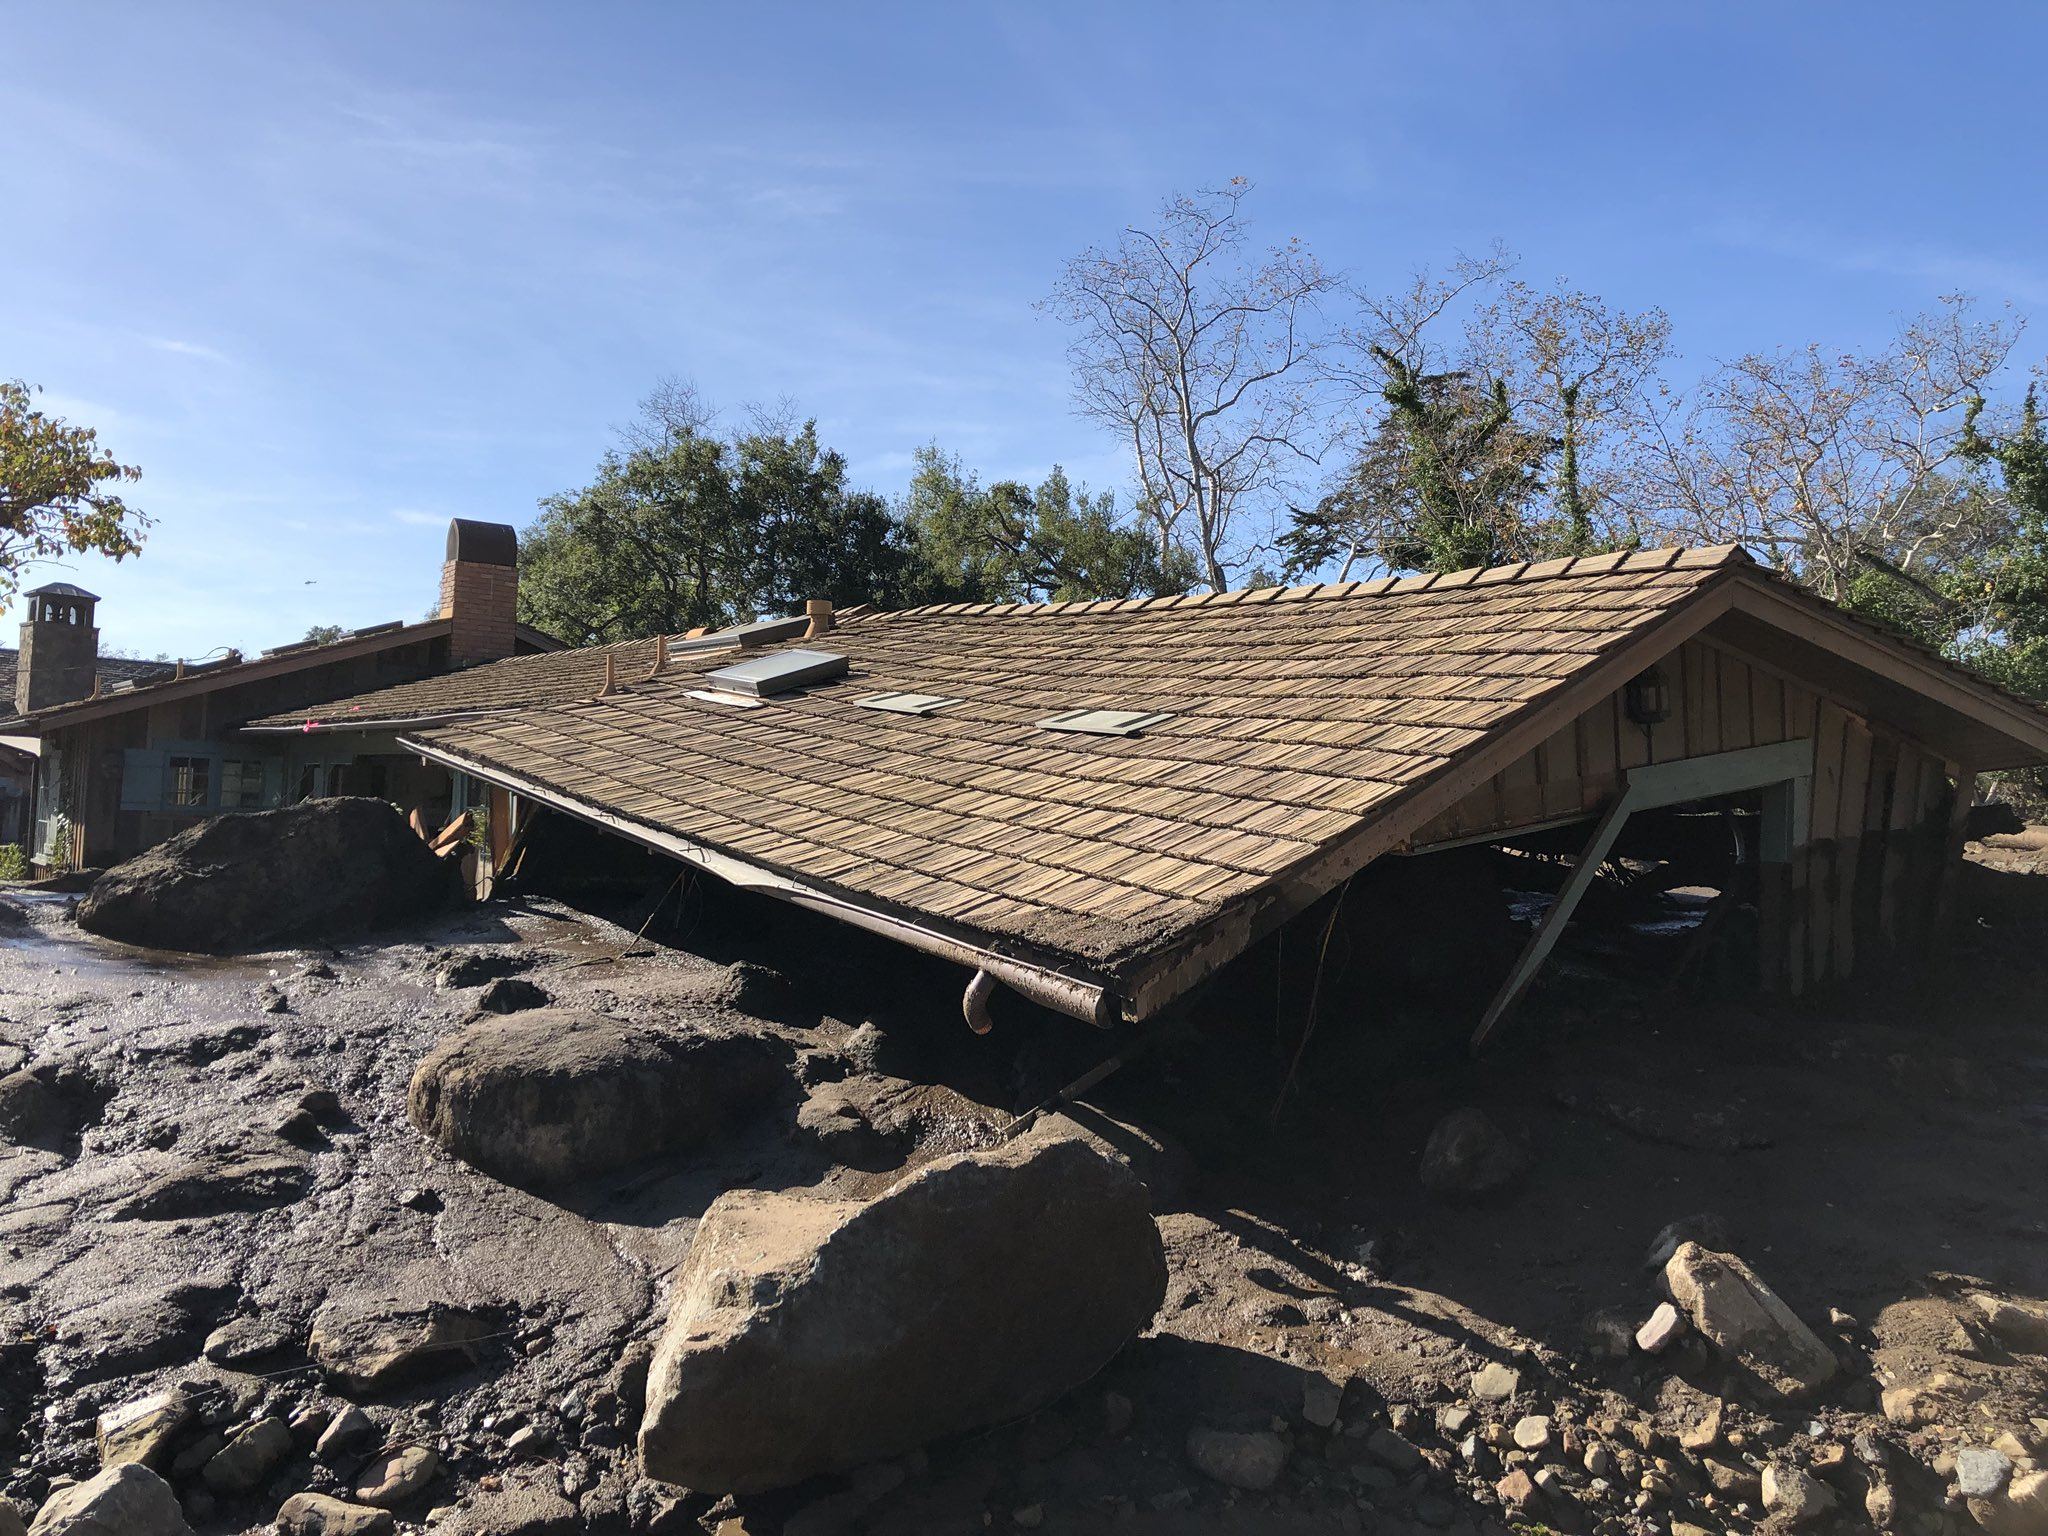 Mudflow, boulders , and debris from heavy rain runoff early Tuesday reached the roof of a single story home off San Ysidro Creek in Montecito. (Photo & Caption: Mike Eliason, Santa Barbara County Fire Dept.)